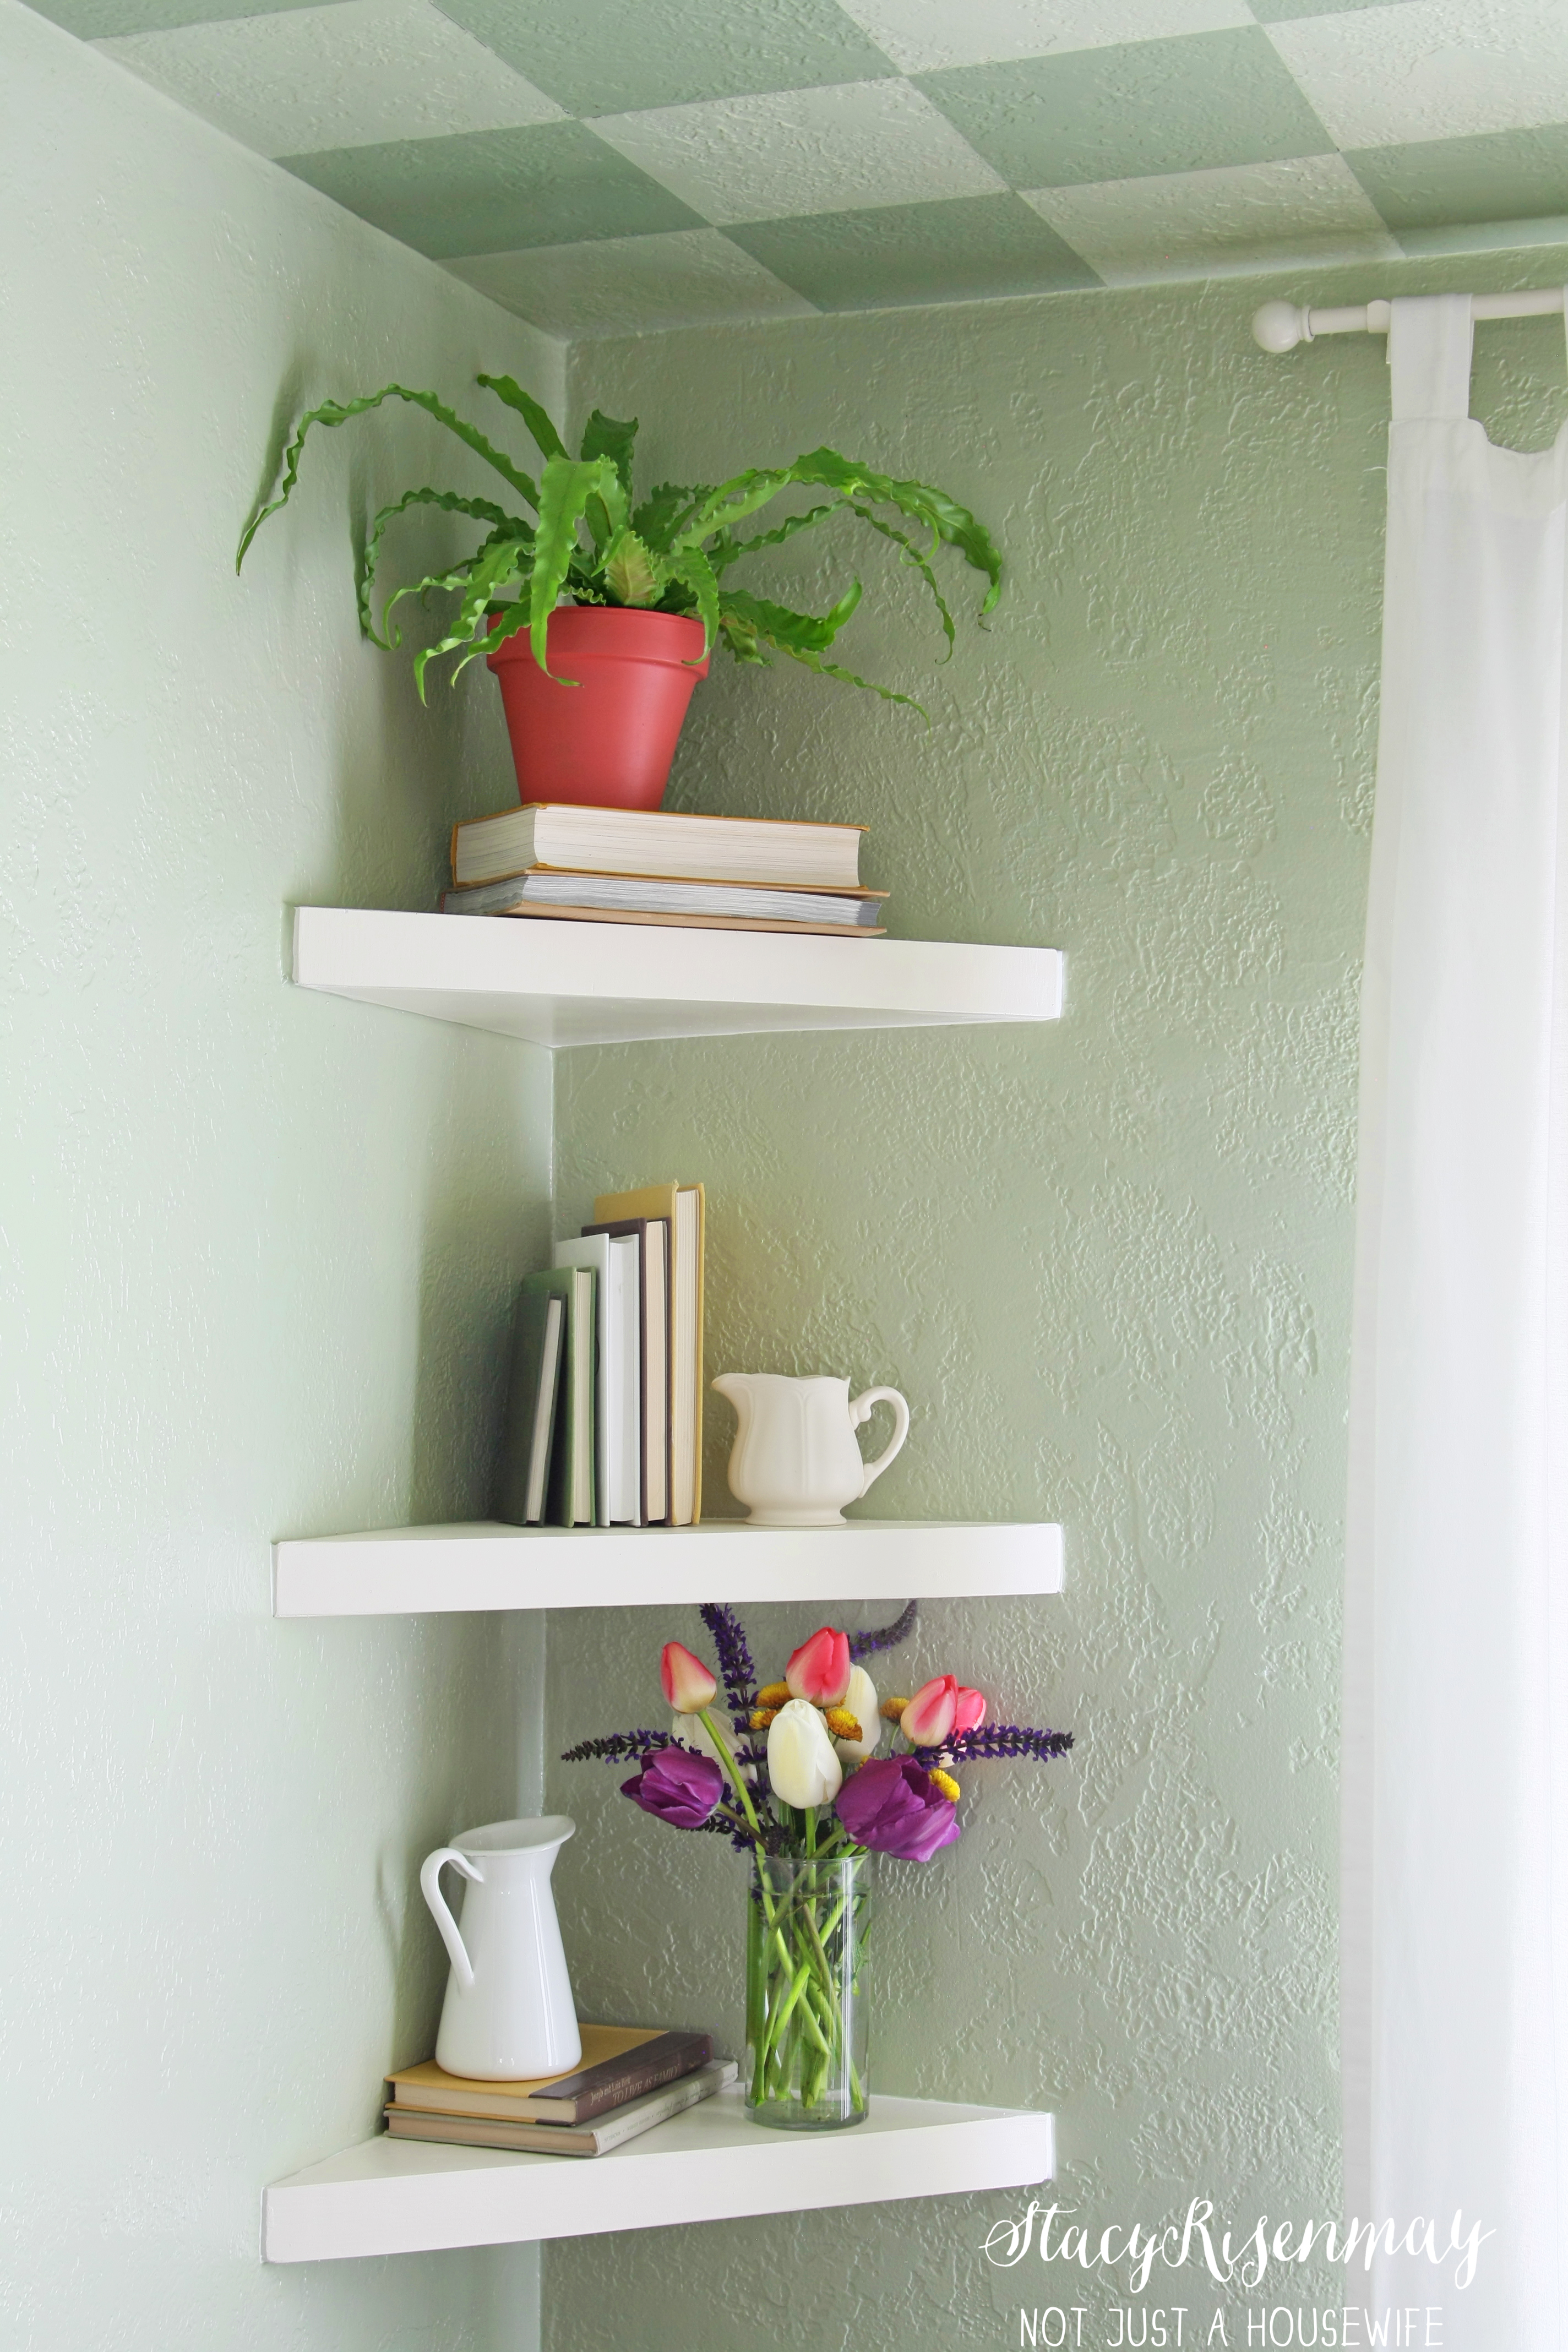 floating corner shelves stacy risen triangle shelf shleves utility wall black glass media storage kitchen trolley kids bookshelf plans ikea book rack command hooks heavy screw